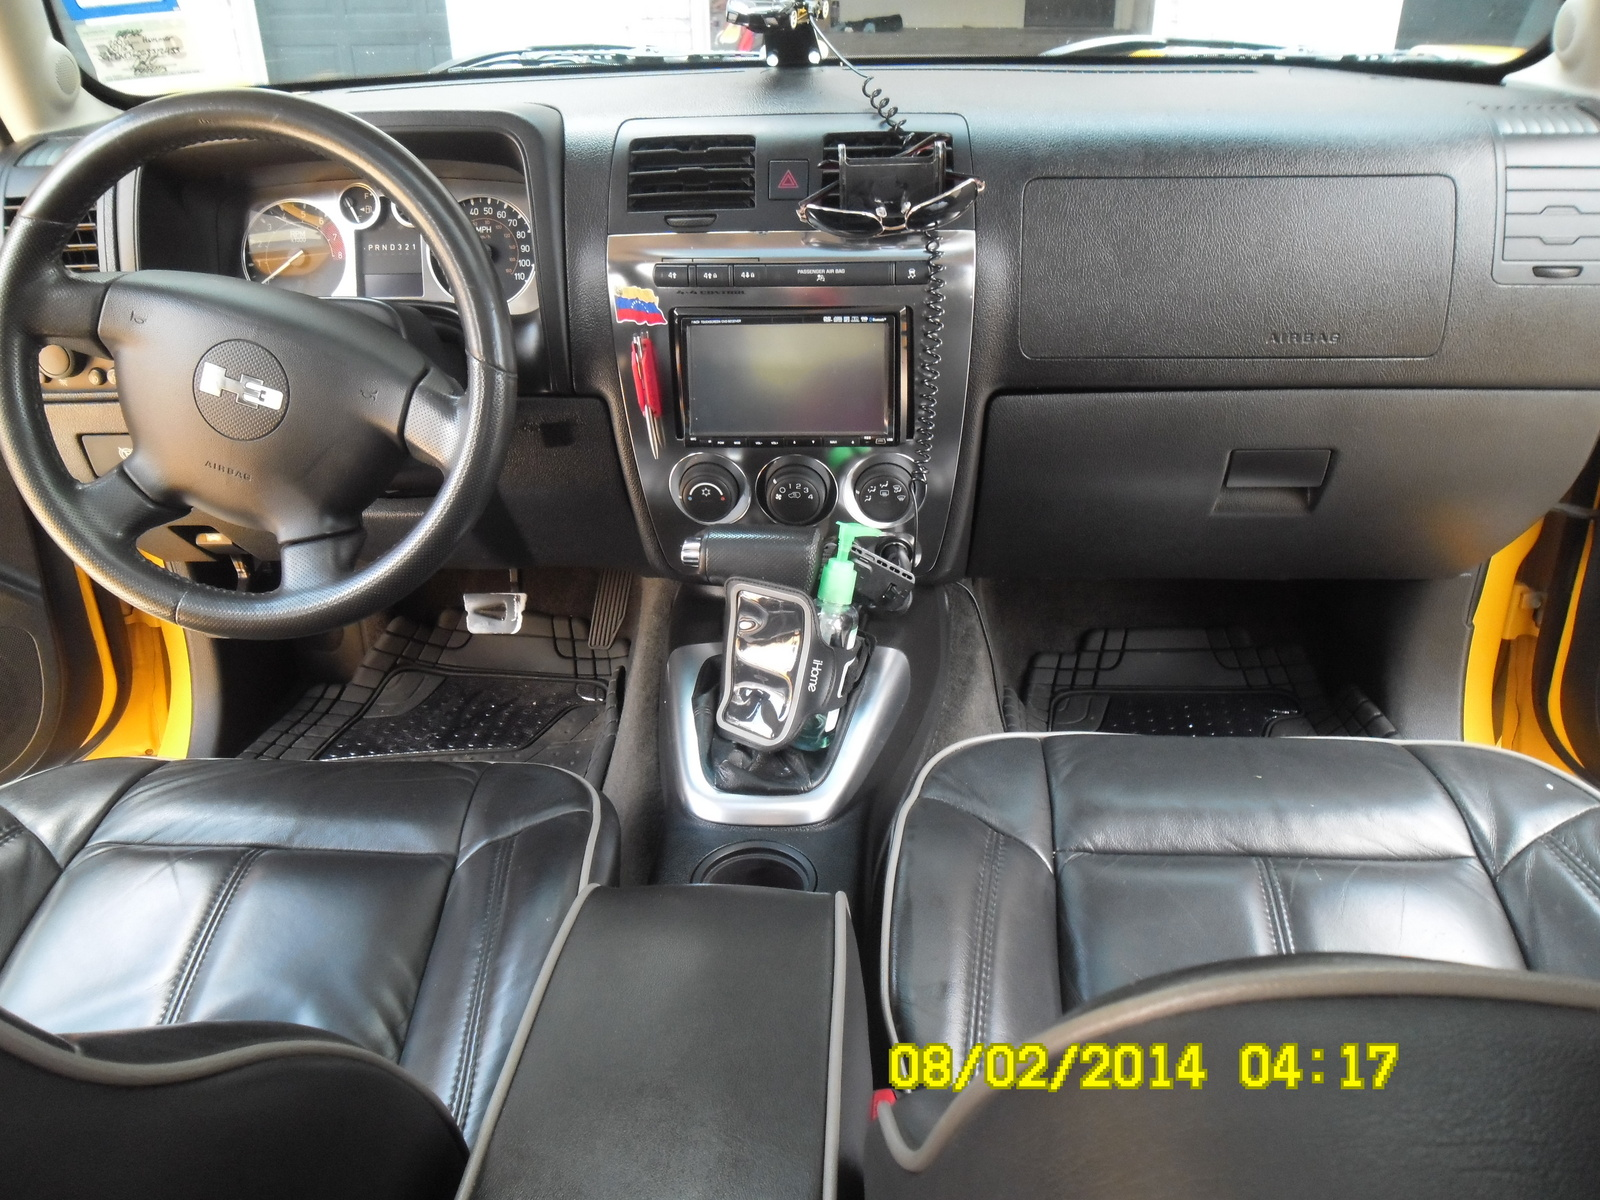 Hummer alpha h3 hummer h3 alpha interior 2016 hummer h3 suv alpha photos and user 2006 hummer h3 4dr suv 4wd pic 3660009673217376283 vanachro Image collections